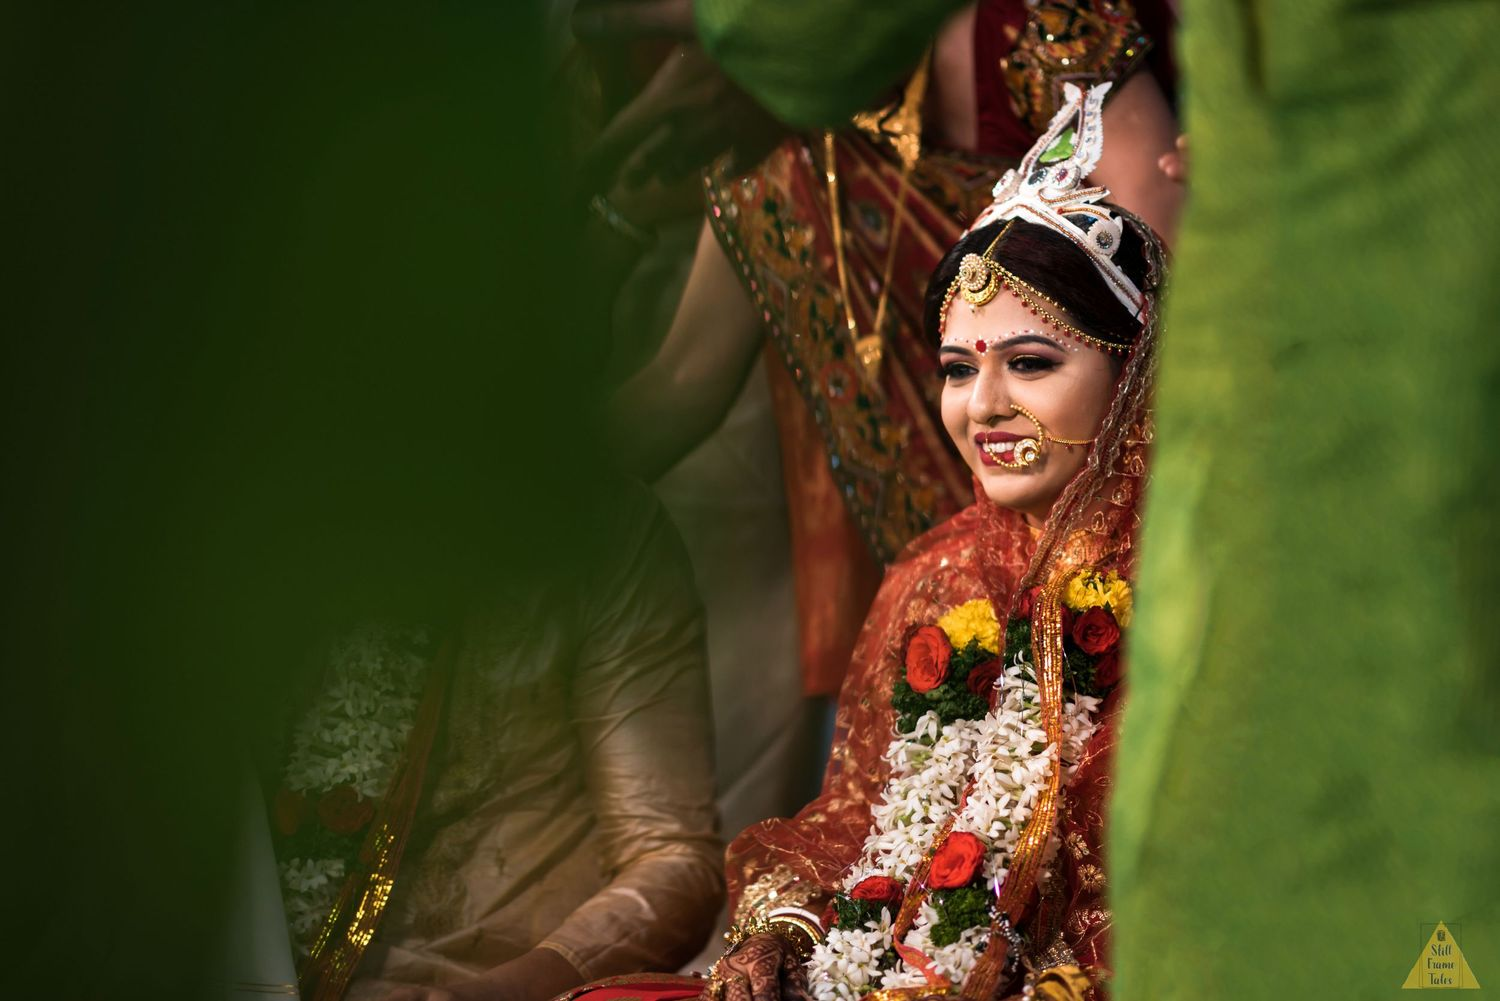 Bengali bride enjoying wedding day rituals in a green background=d